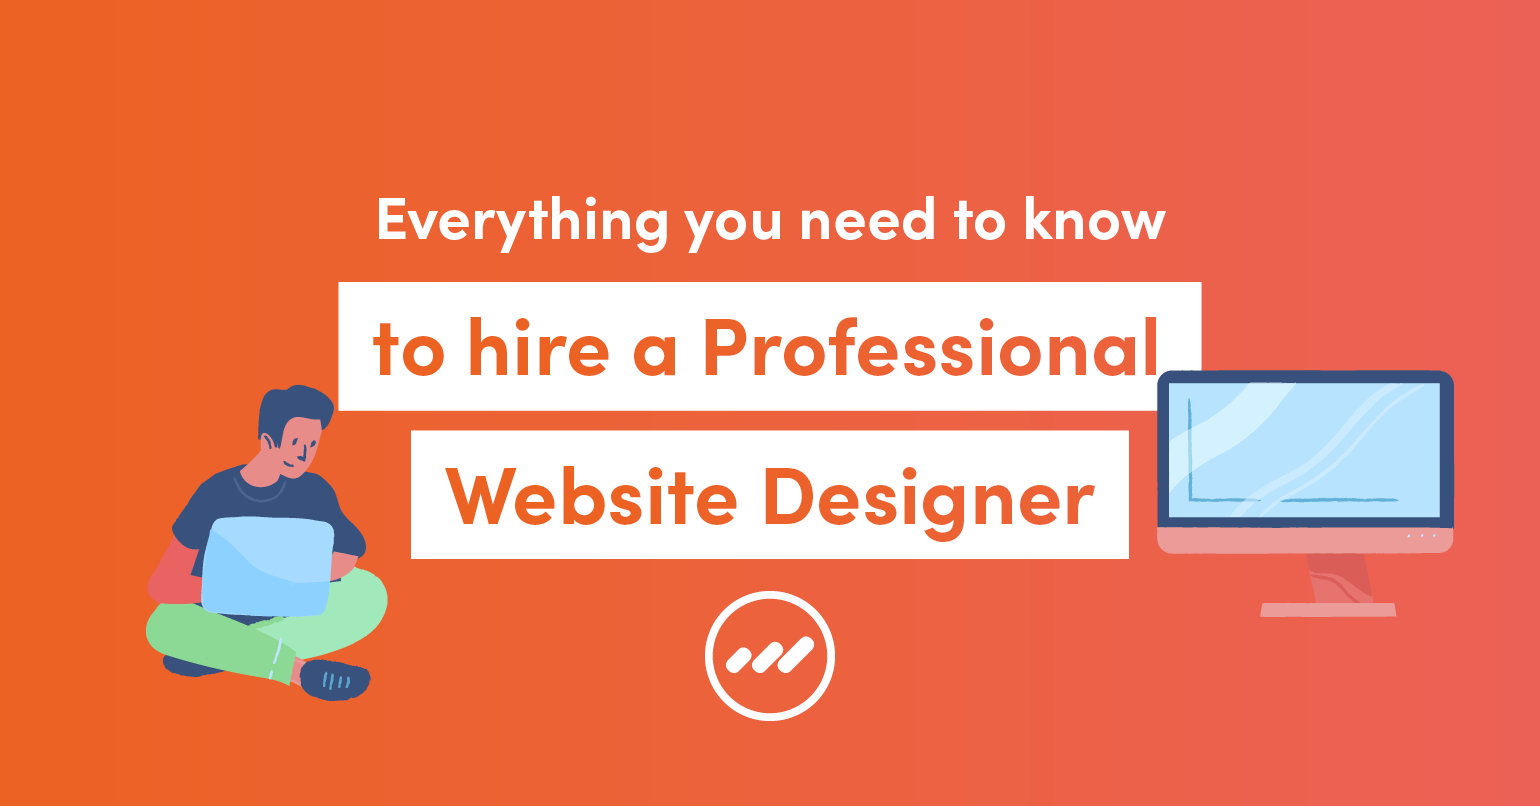 EverythingYouNeedToKnowToHireWebDesigner